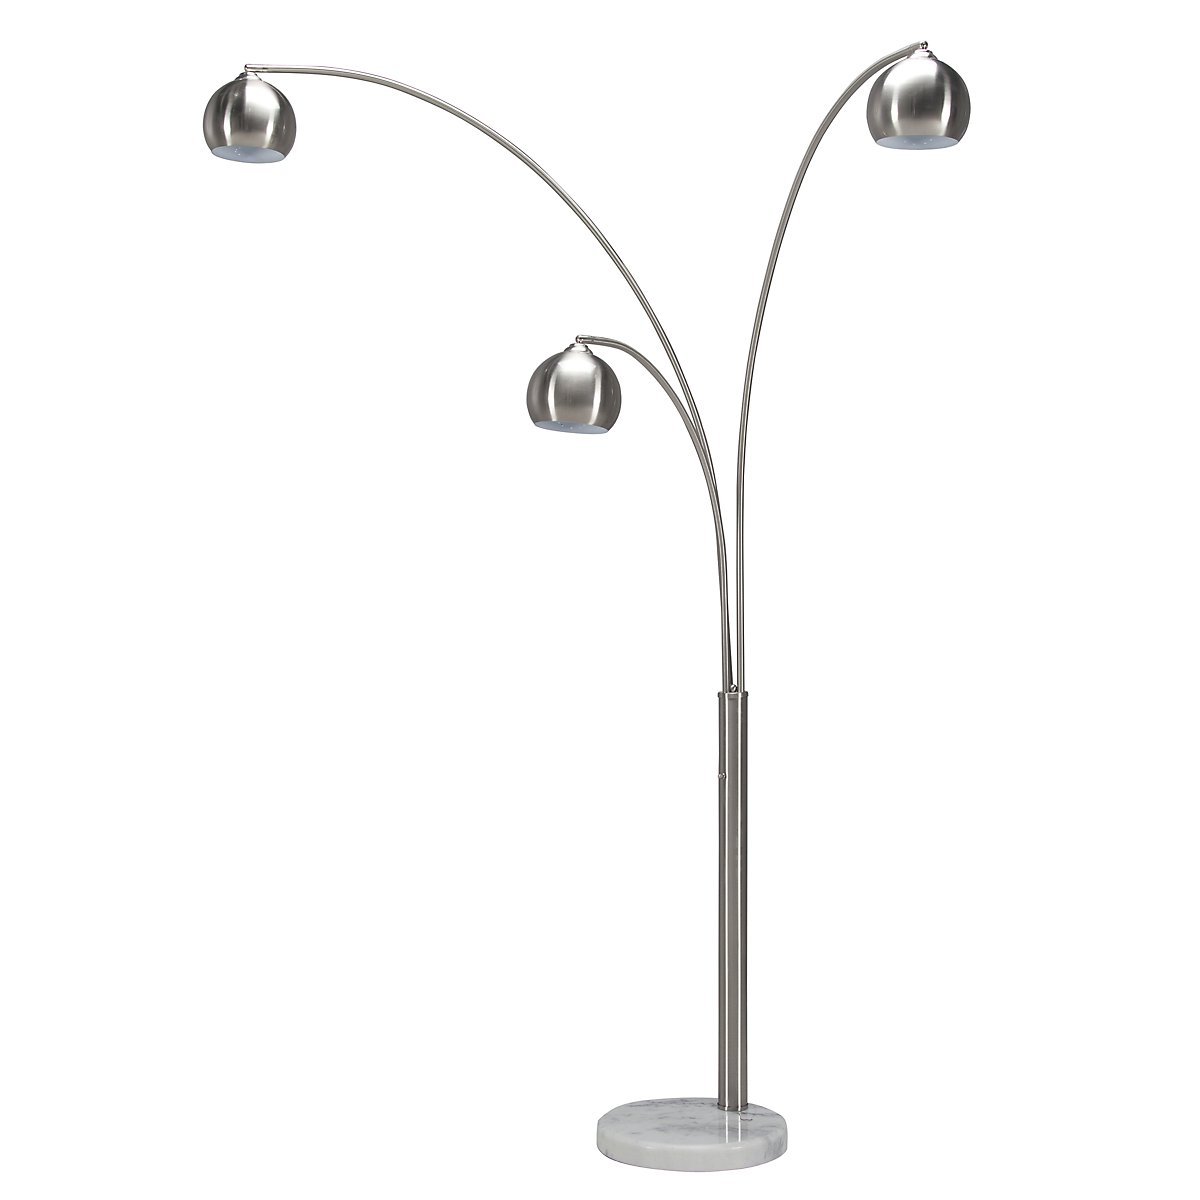 city furniture town silver arc floor lamp. Black Bedroom Furniture Sets. Home Design Ideas